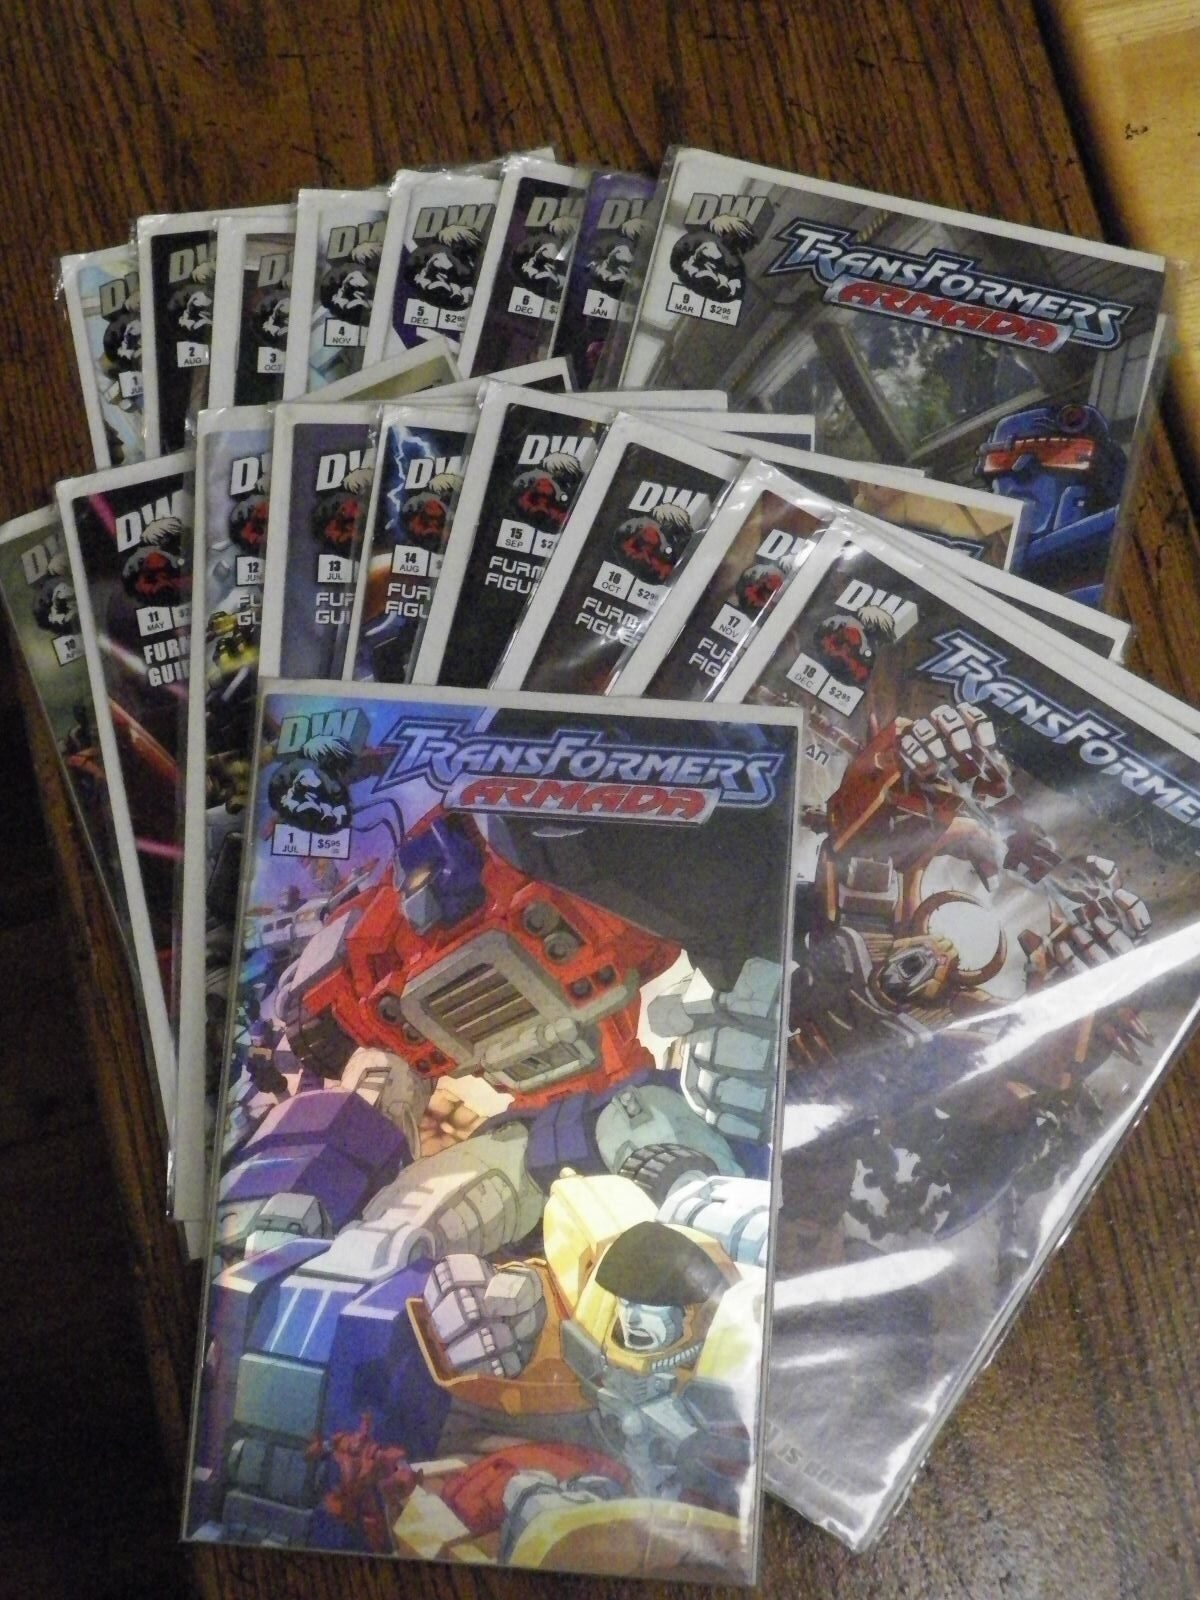 DW Transformers Armada complete set + holographic vol 1